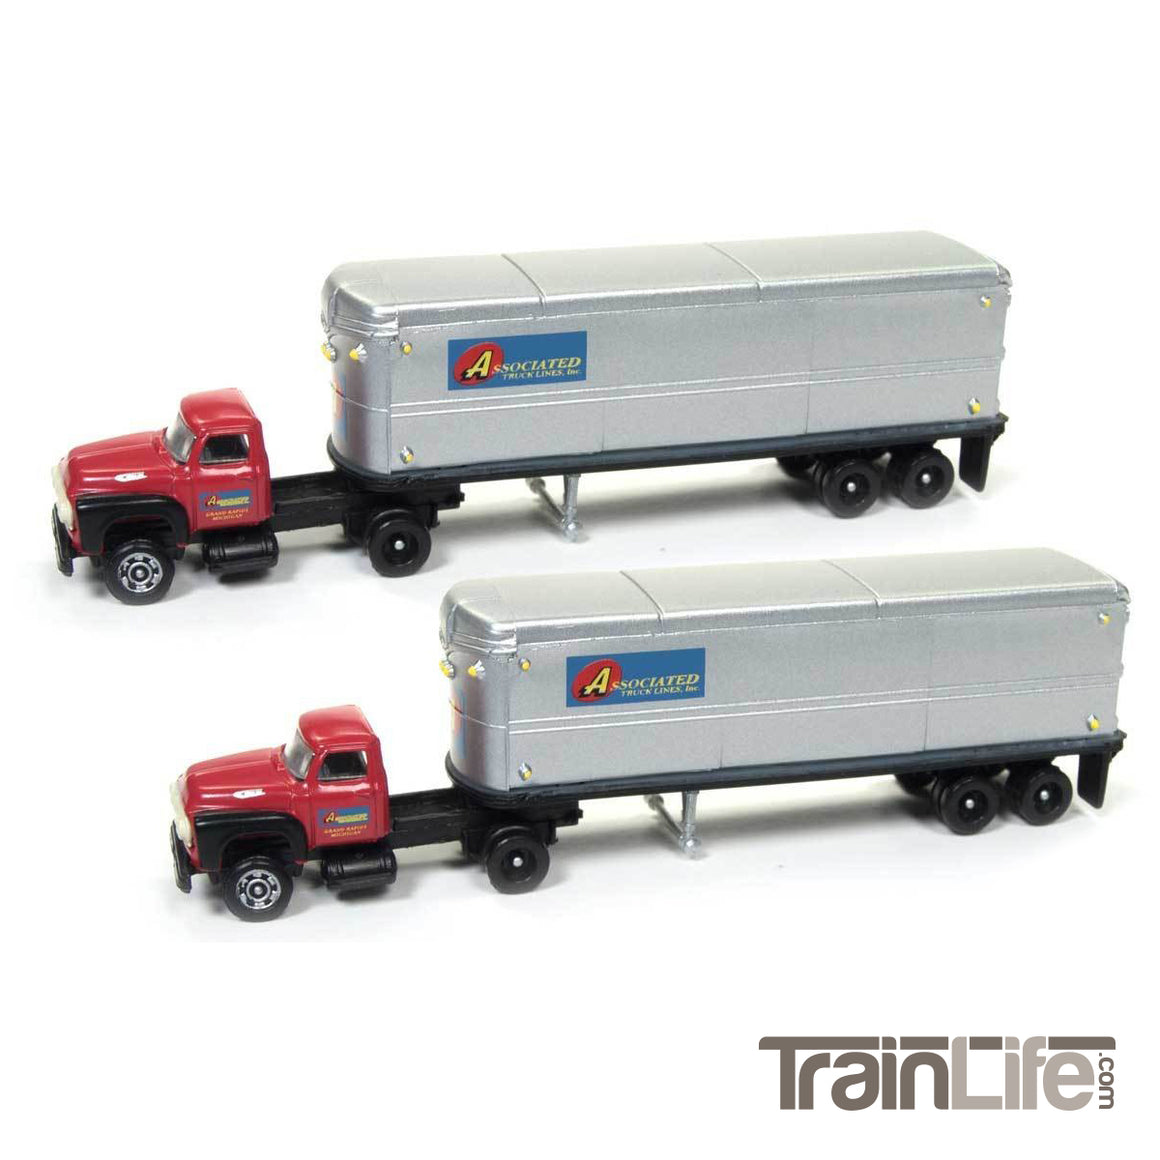 N Scale: 1954 Ford Tractor & Trailer Set - Associated Truck Lines - 2 Pack